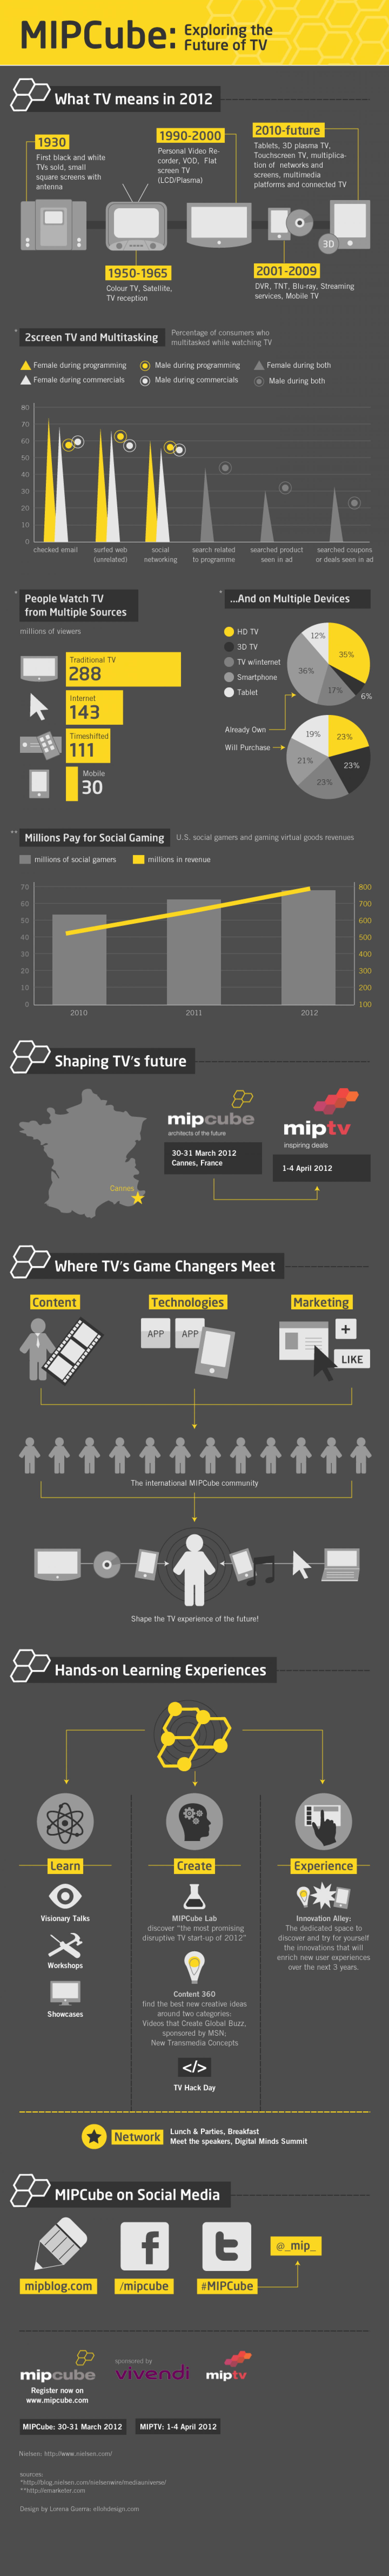 MIPCube conference Infographic